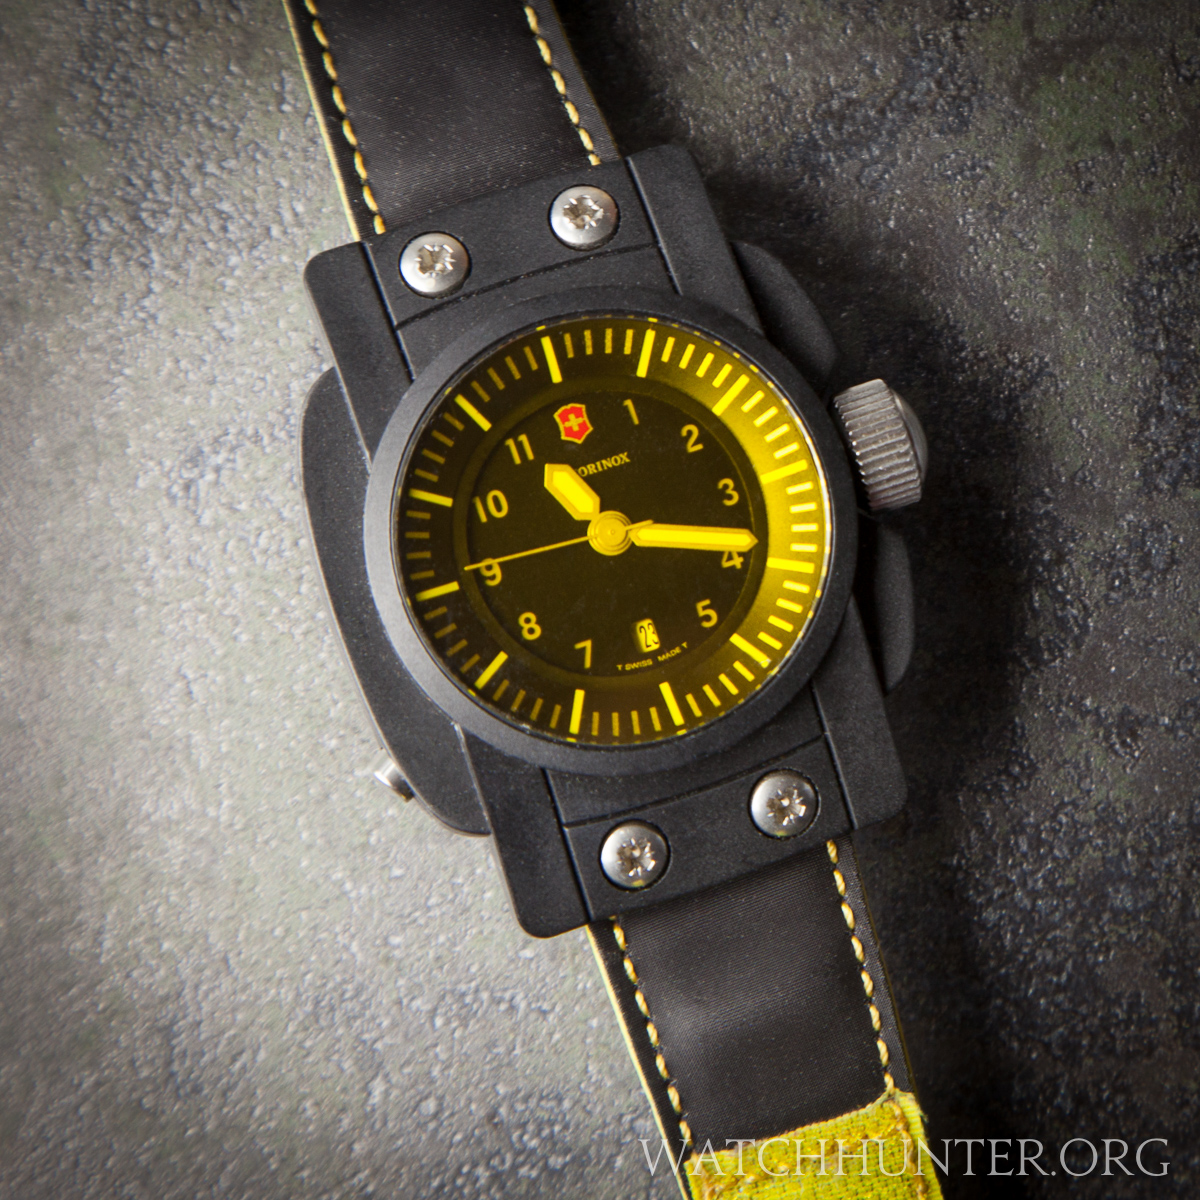 The mineral glass crystal is yellow on this unique Swiss Army watch